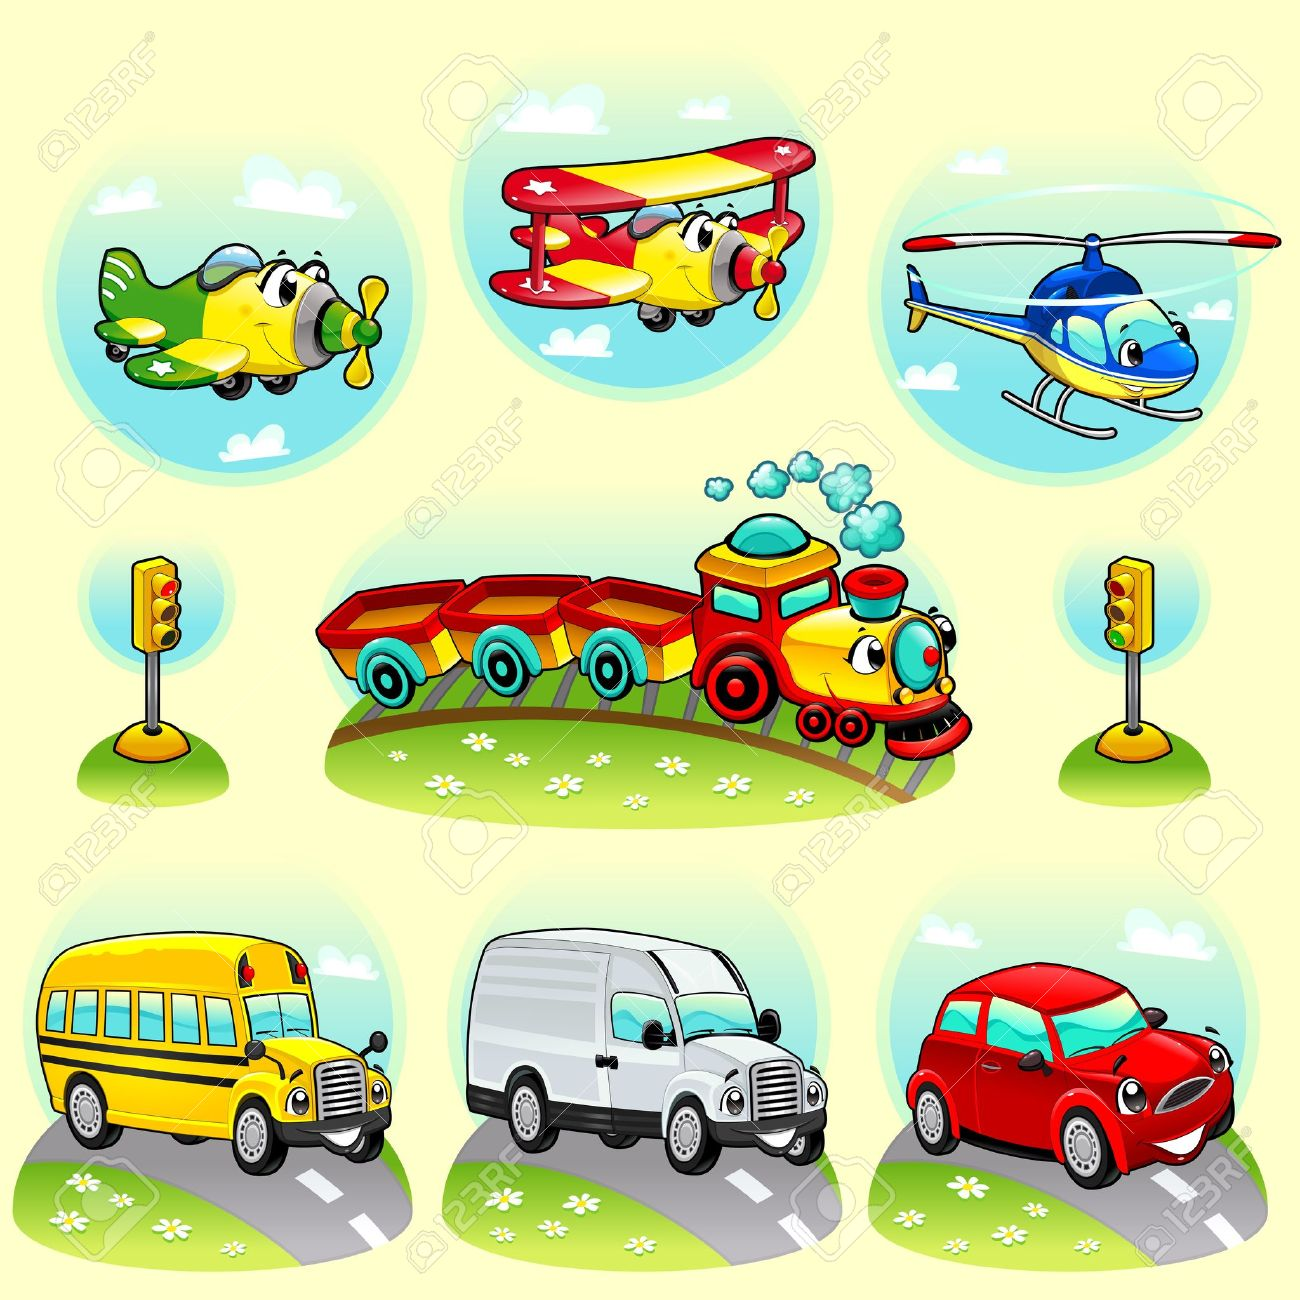 Funny vehicles with background. Stock Vector - 15284176